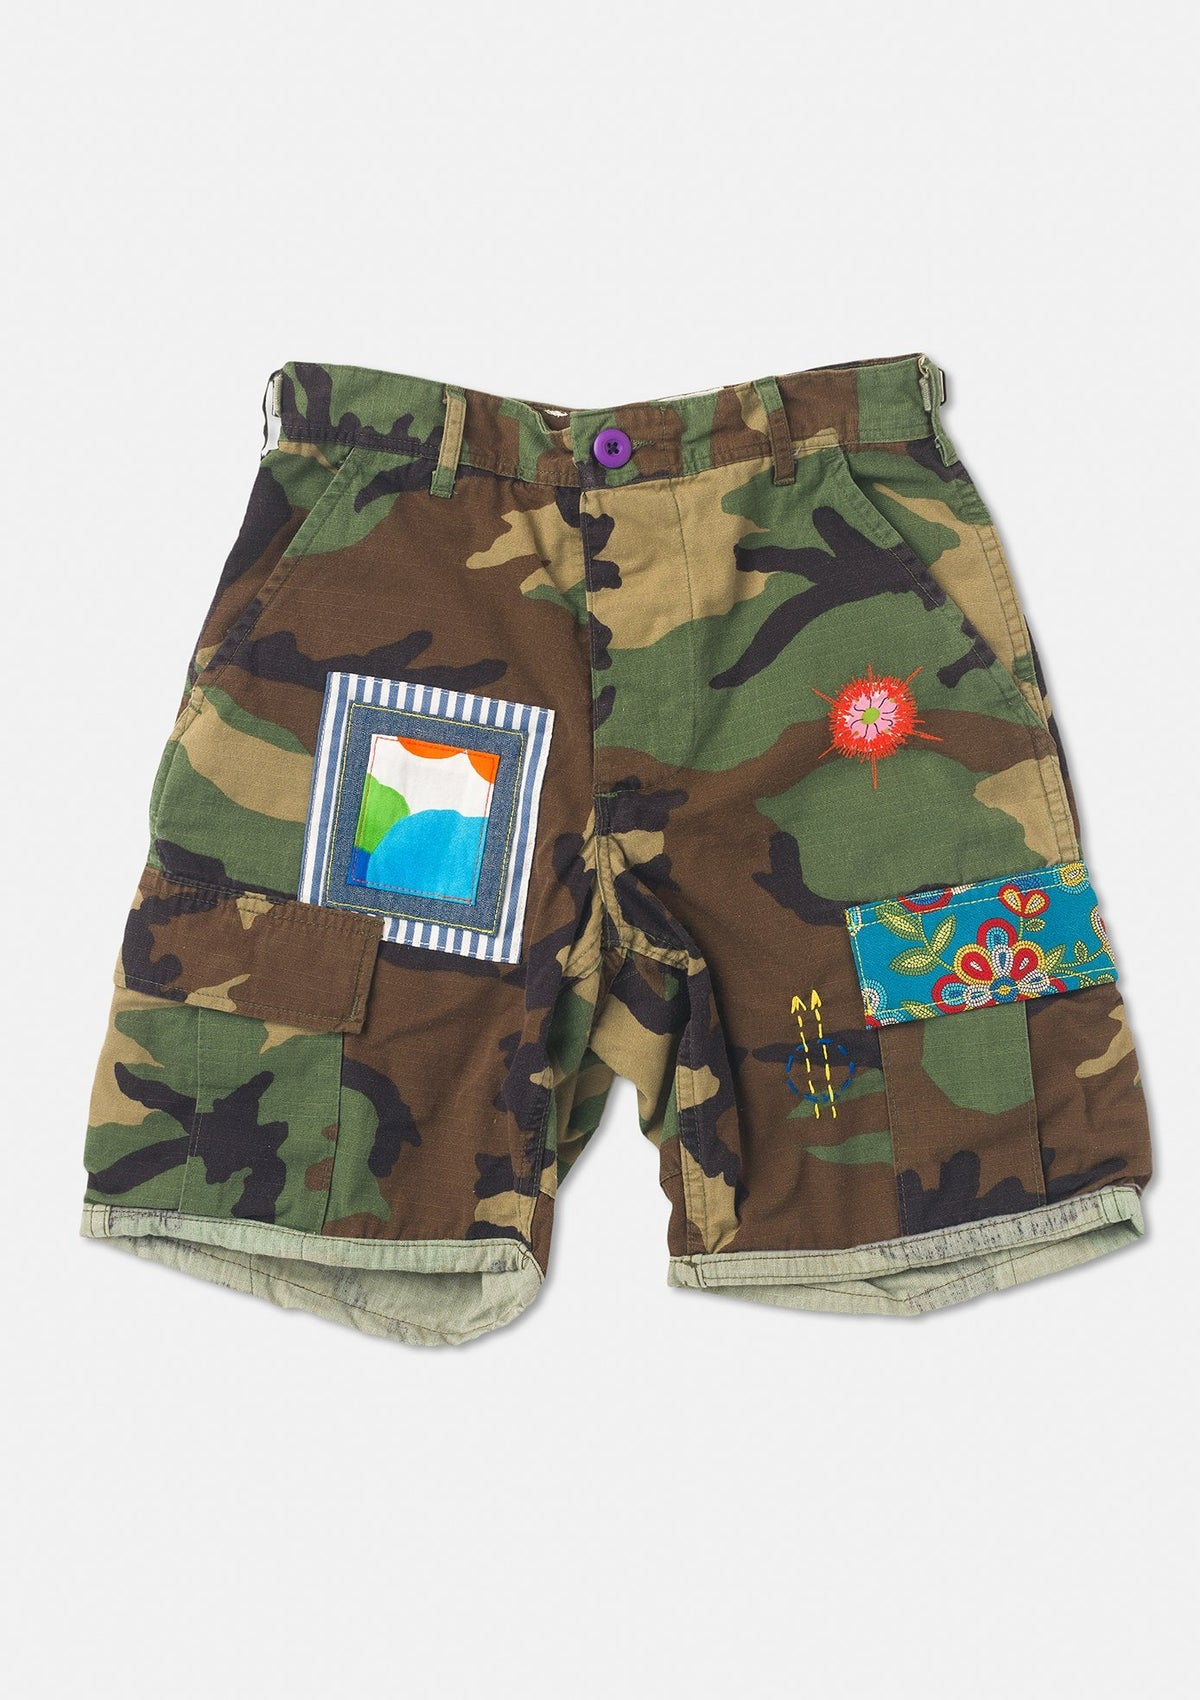 The Camo Cargos on LSD Shorter